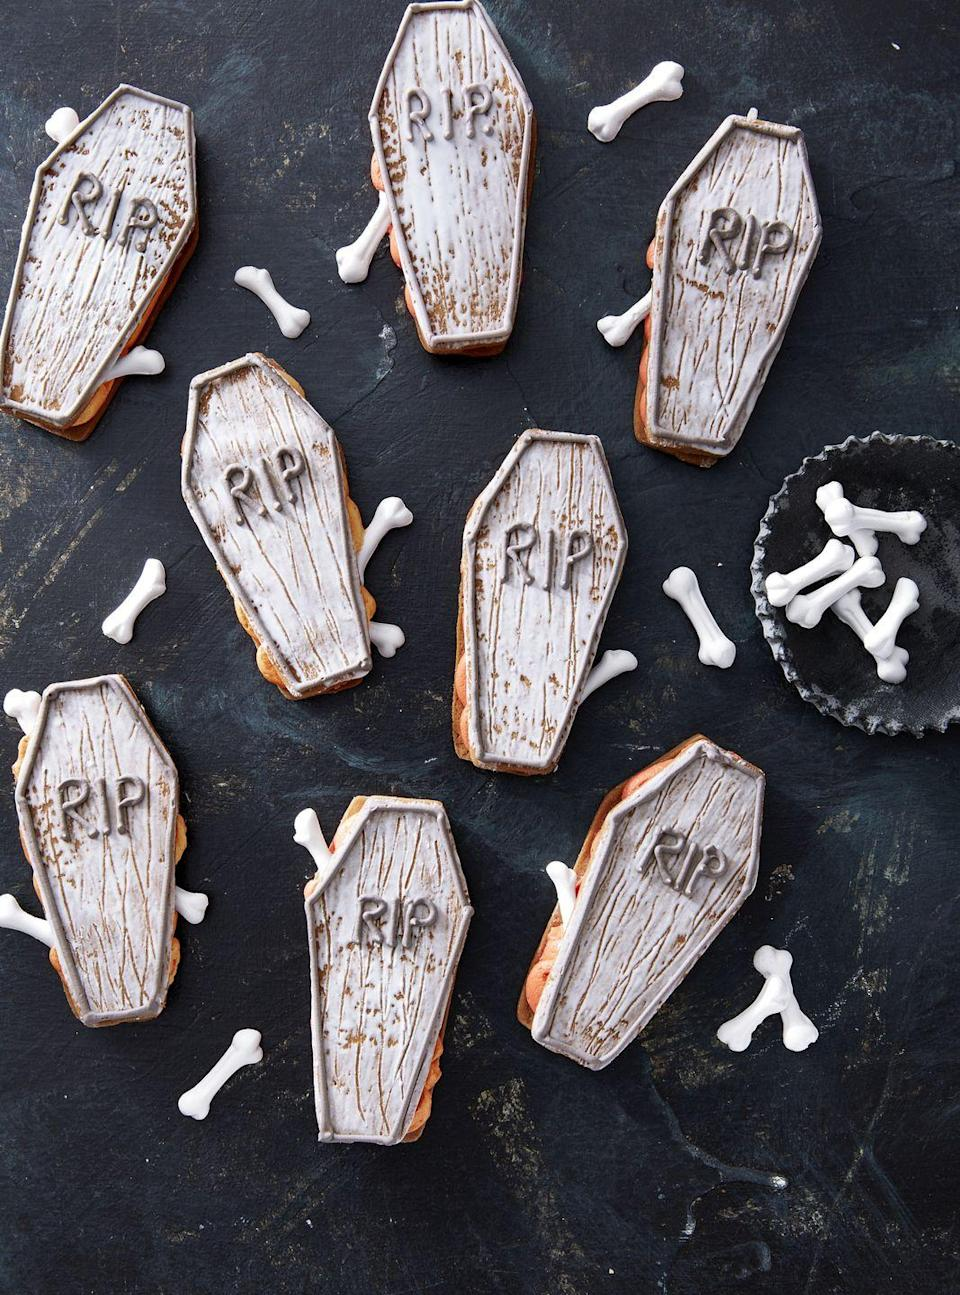 """<p>It's a lot easier to make these cookies than you might think. Simply drag a fork through the royal icing before it sets to get that """"distressed look."""" A quick orange buttercream acts as the filling here.</p><p><strong><a href=""""https://www.countryliving.com/food-drinks/a28943552/coffin-sandwich-cookies/"""" rel=""""nofollow noopener"""" target=""""_blank"""" data-ylk=""""slk:Get the recipe"""" class=""""link rapid-noclick-resp"""">Get the recipe</a>.</strong> </p>"""